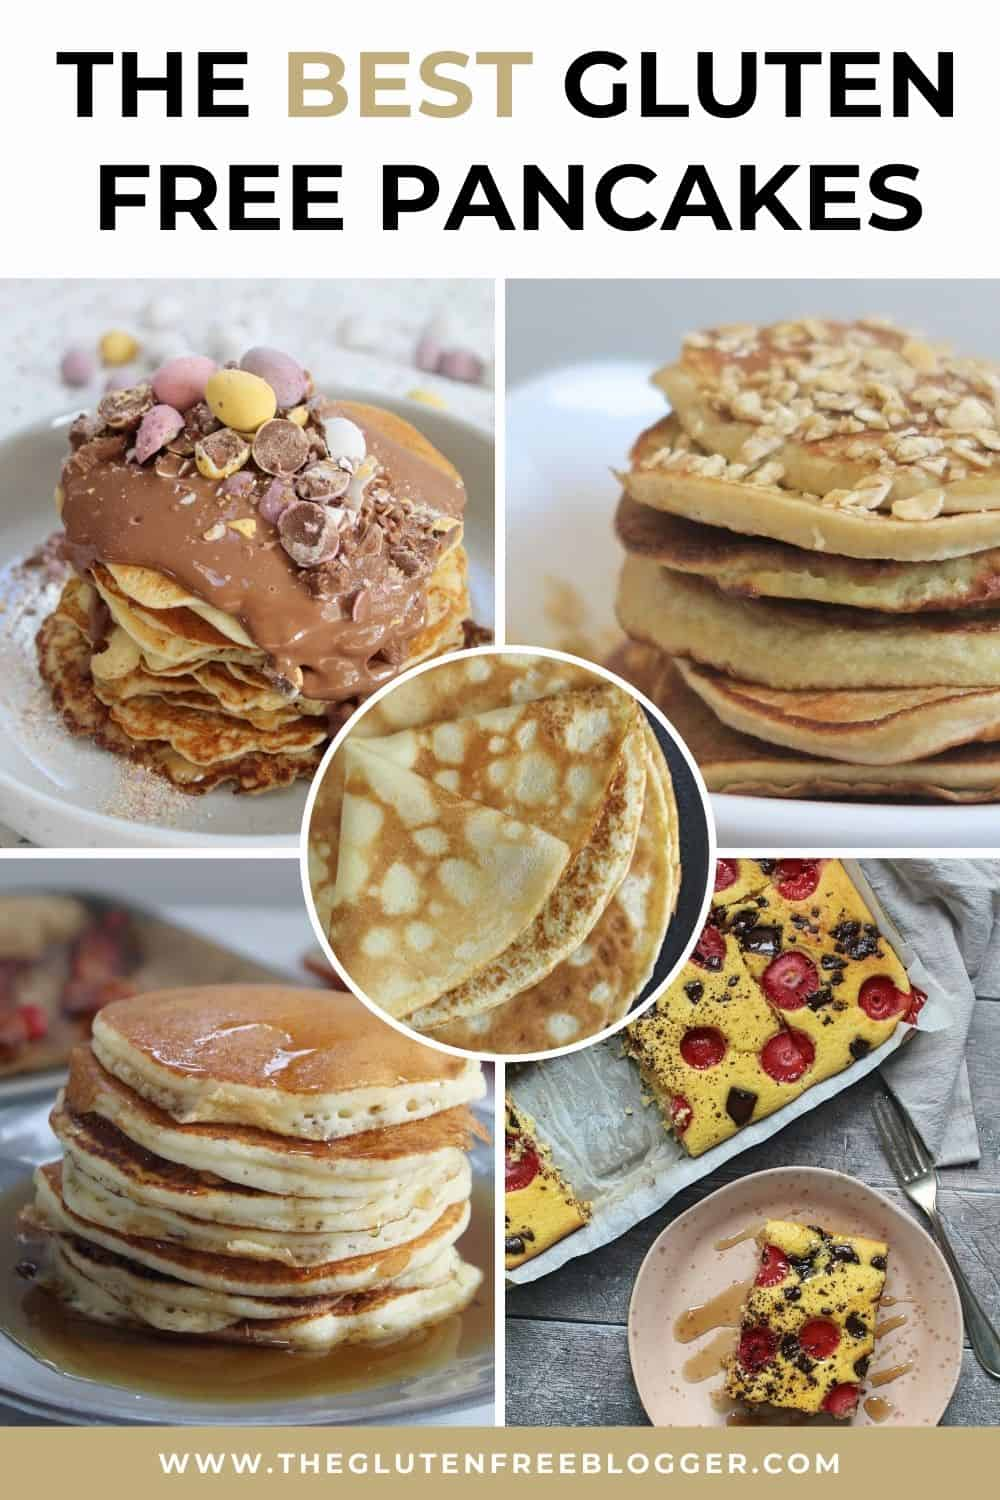 GLUTEN FREE PANCAKE RECIPES FOR PANCAKE DAY (1)GLUTEN FREE PANCAKE RECIPES FOR PANCAKE DAY (1)